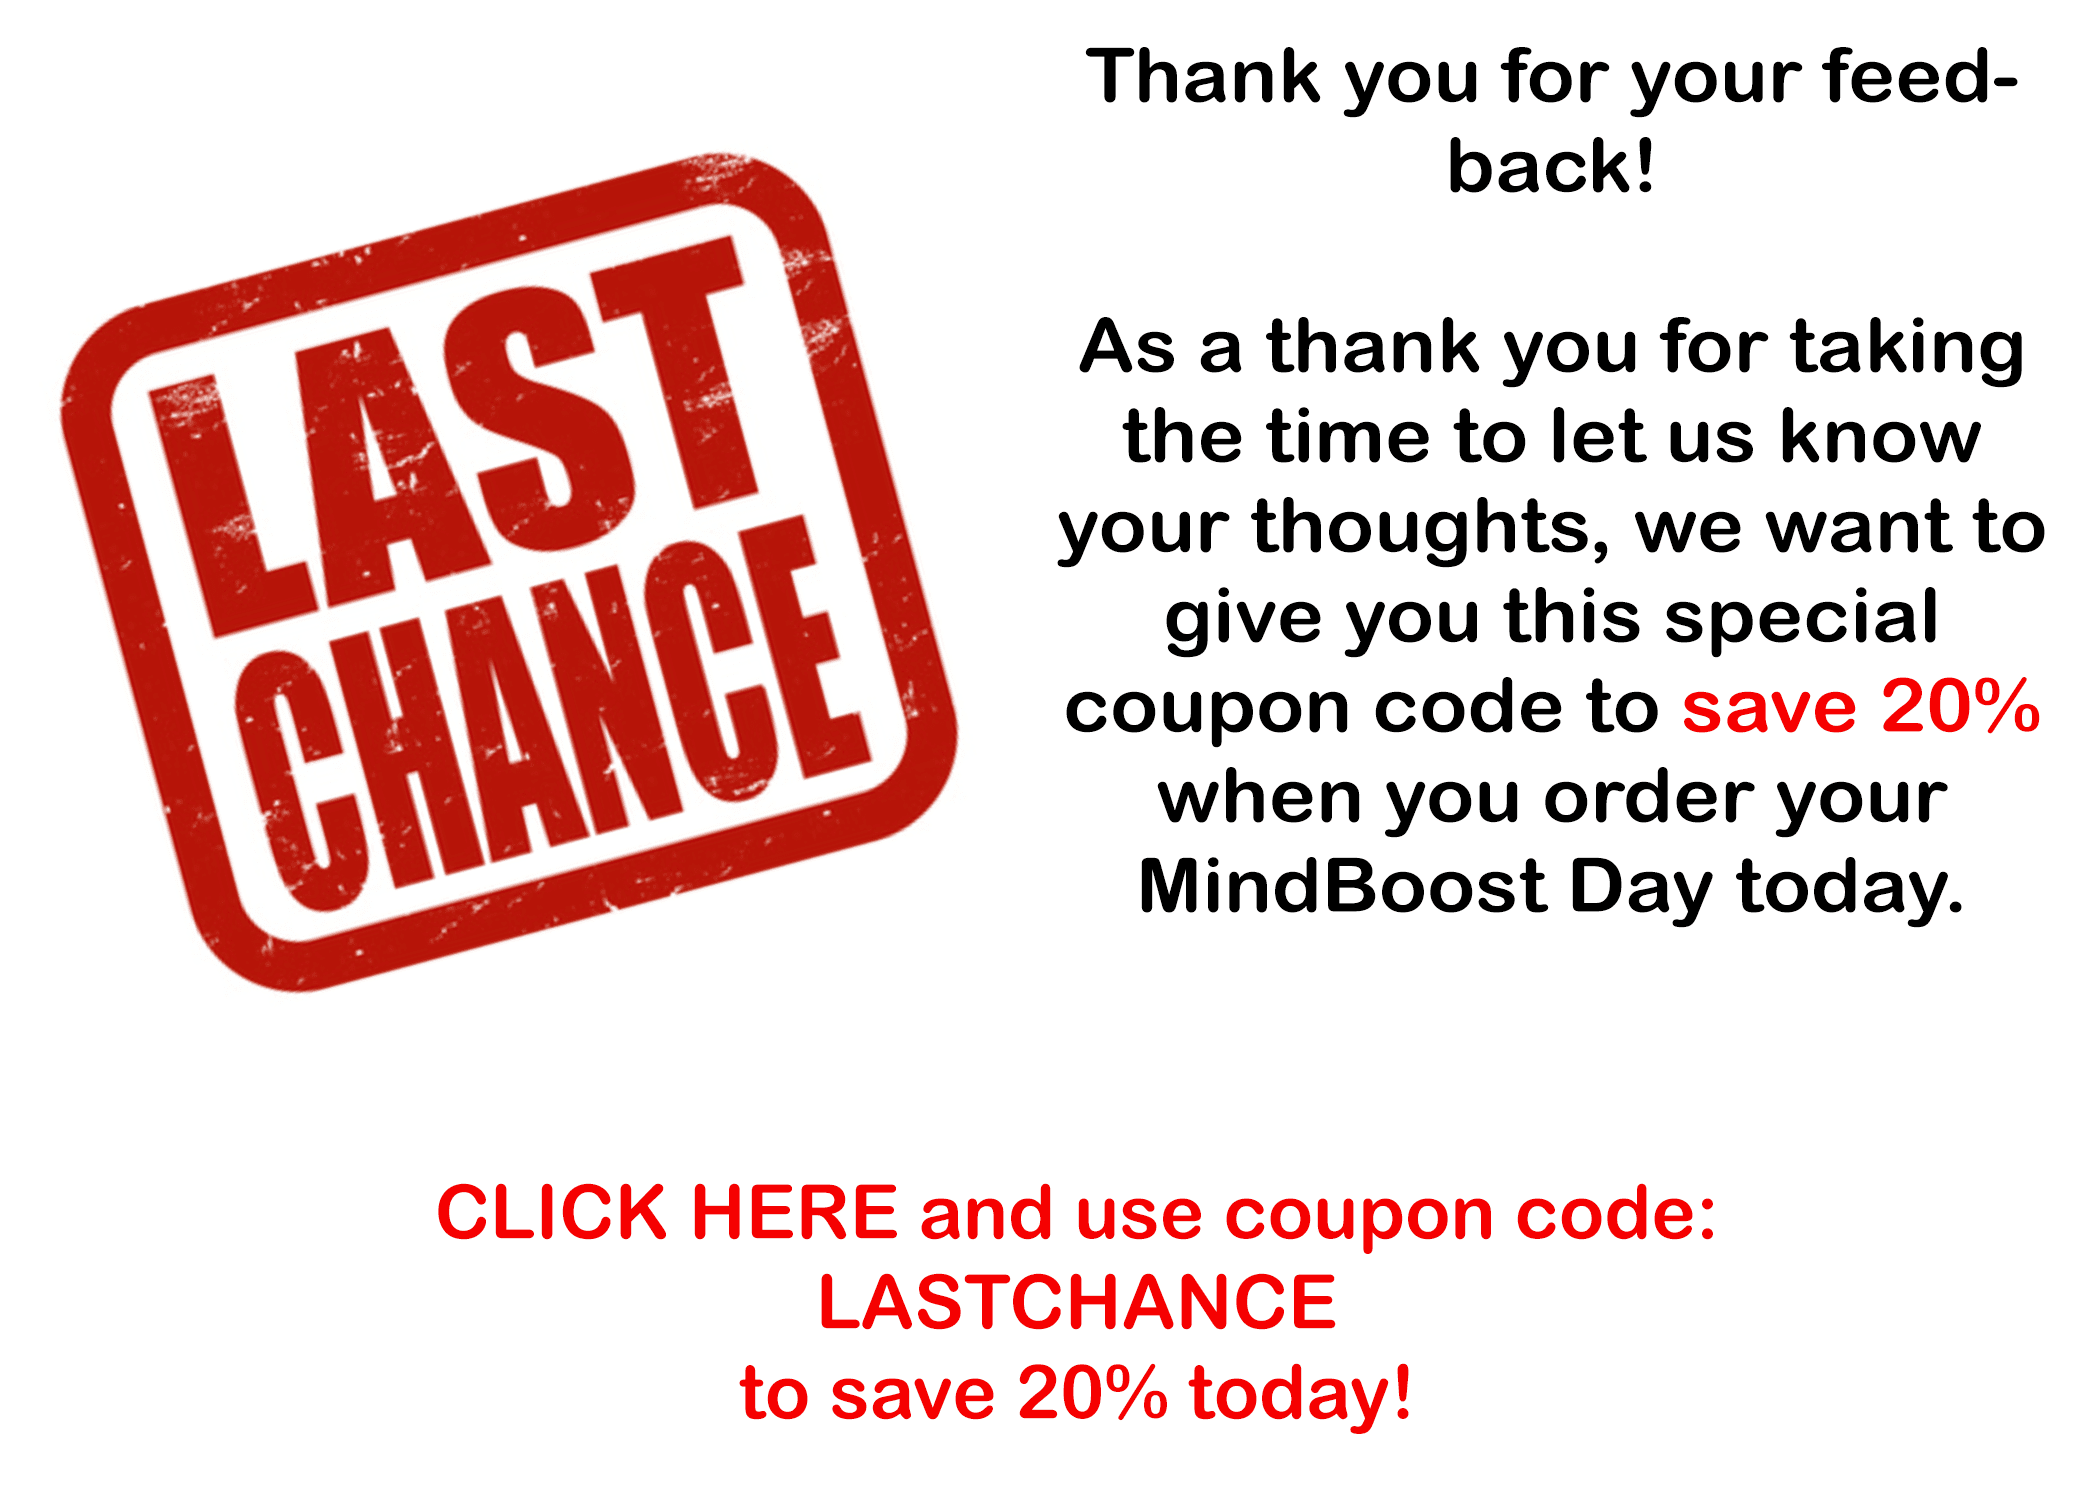 mbd last chance coupon